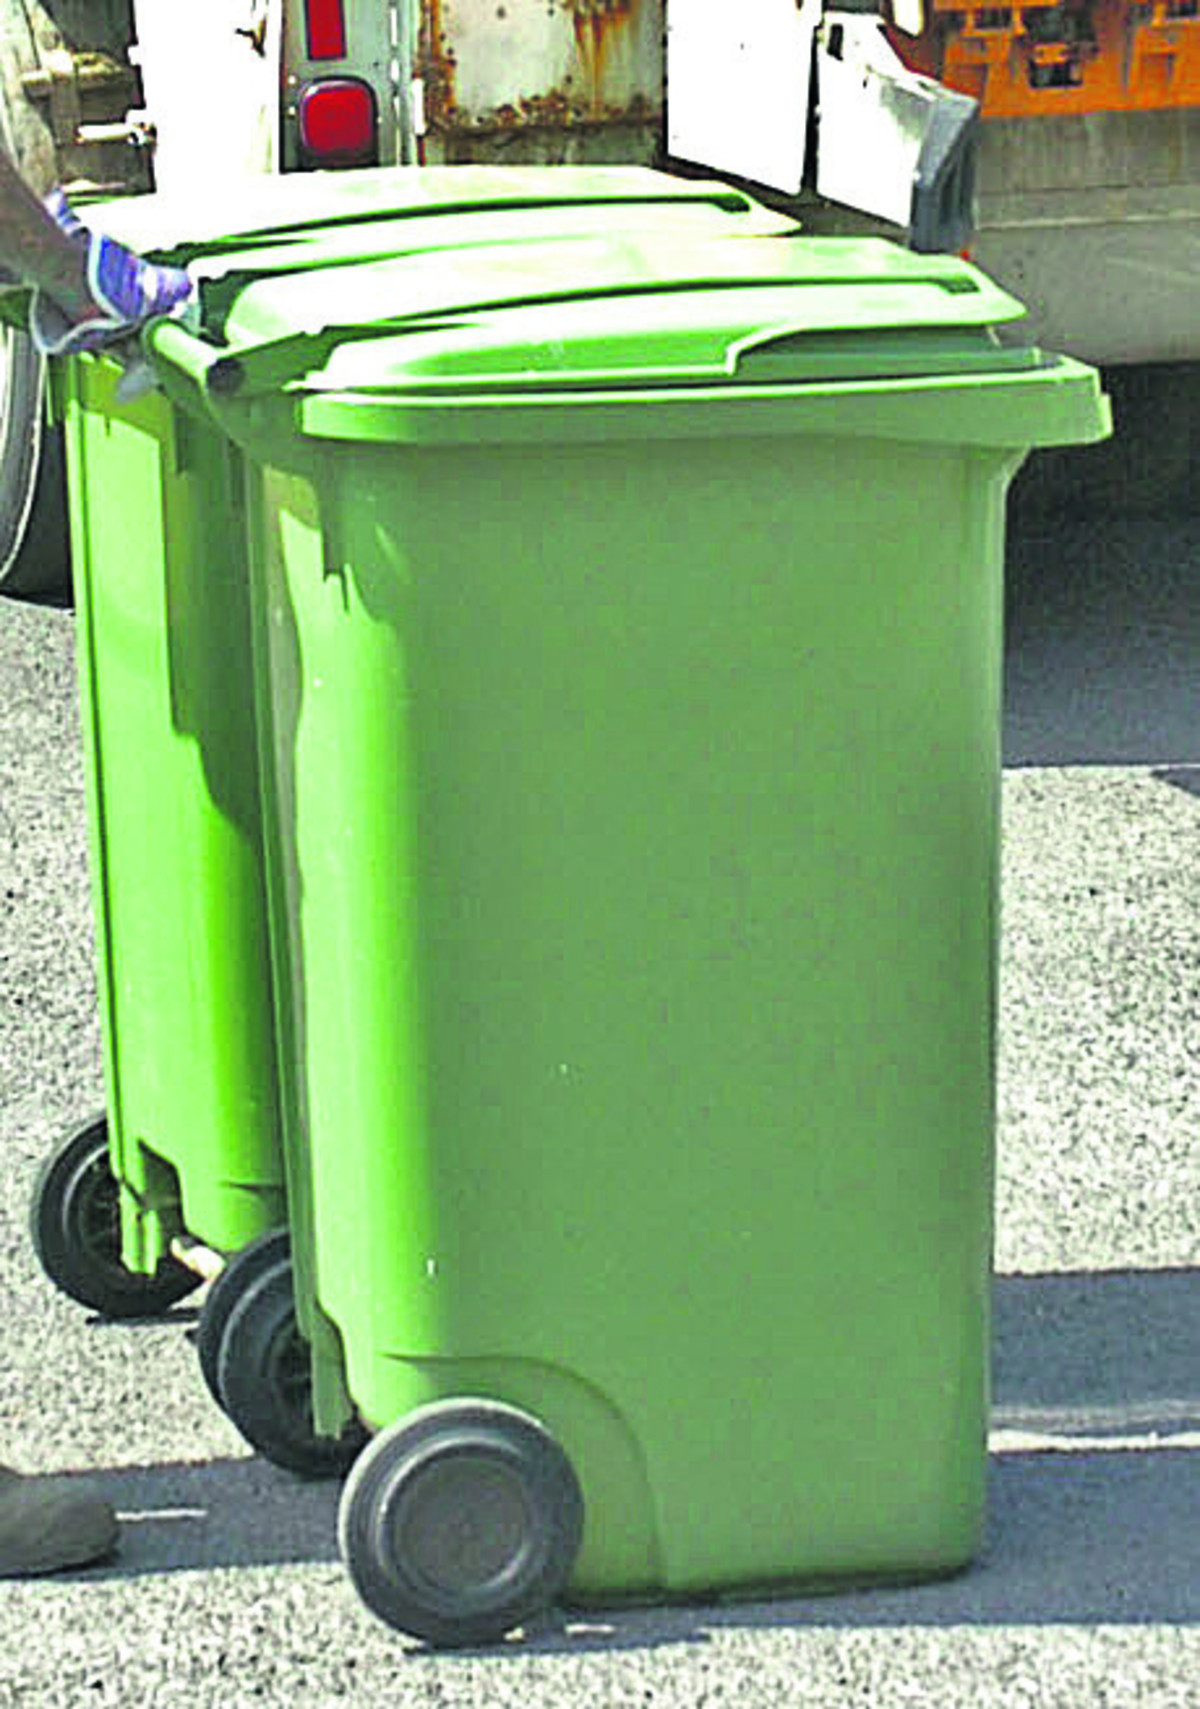 Garden waste collections will come to an end in Wiltshire